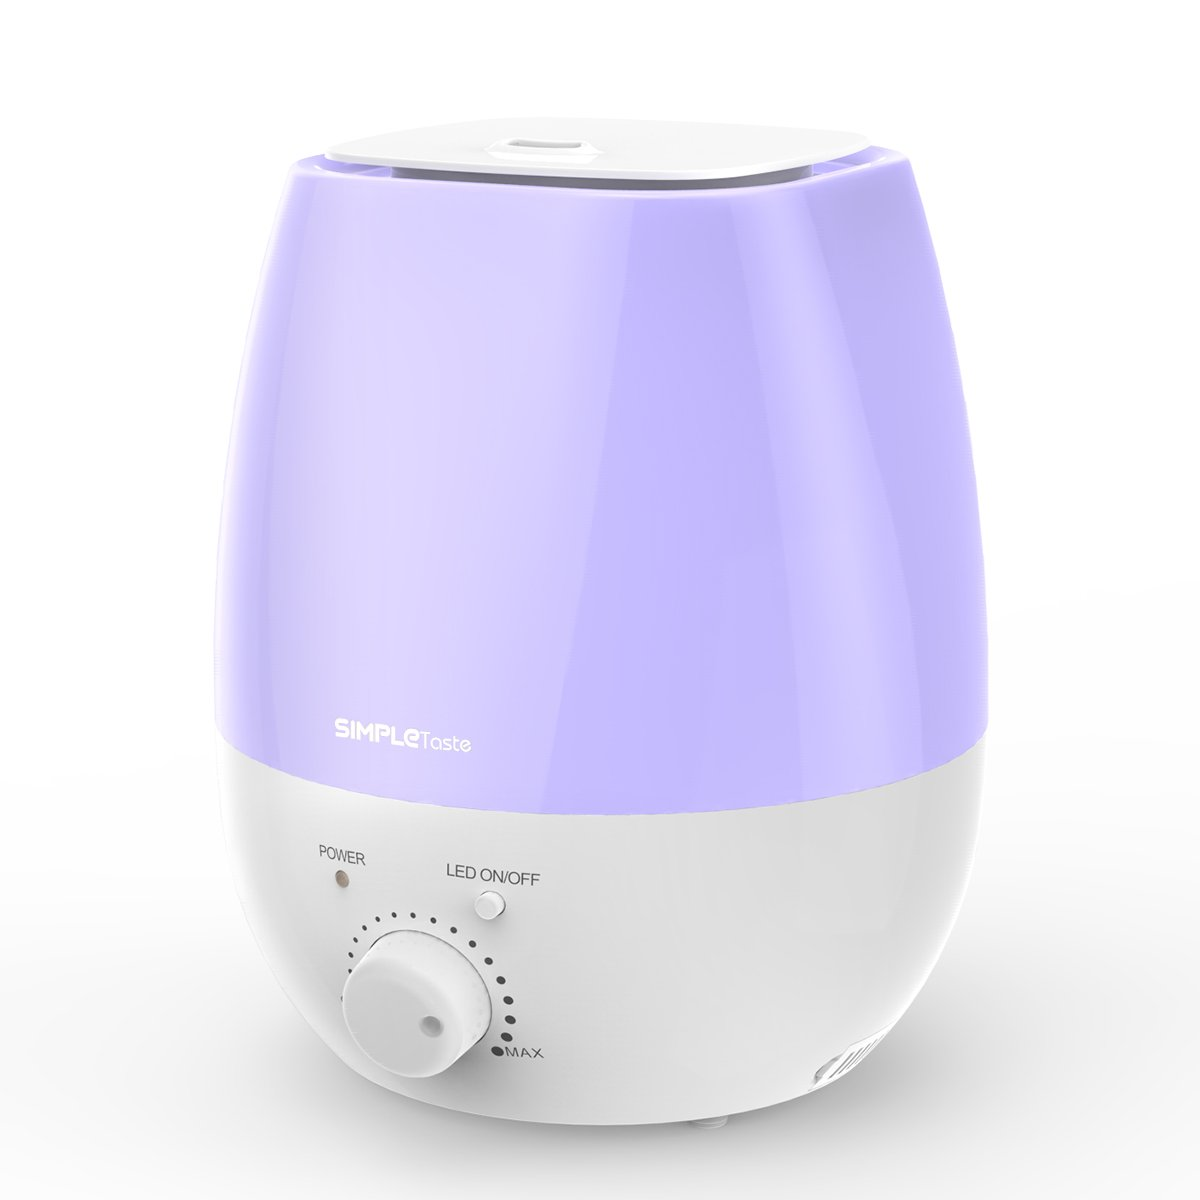 Ultrasonic Humidifier Cool Mist Diffuser with 7 Colors LED Night Lights Whisper-Quiet 0.79 Gal SimpleTaste 3L Purple